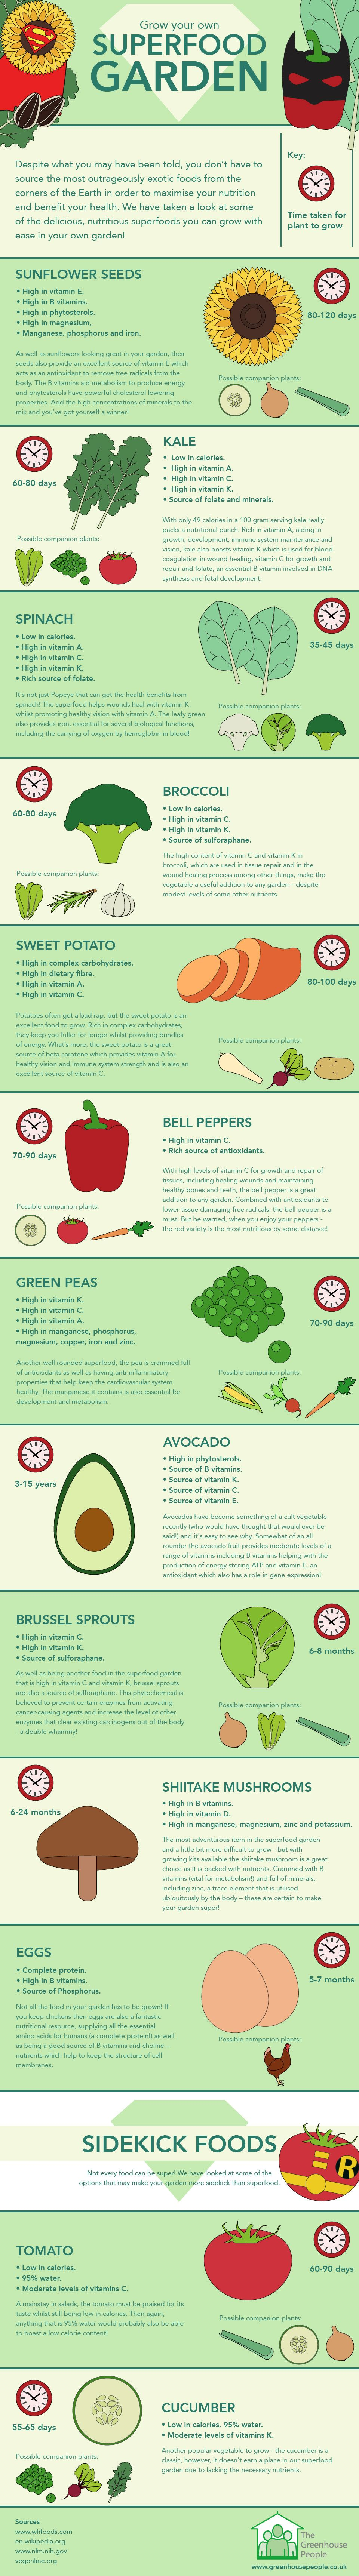 Grow Your Own Superfood Garden #Infographic